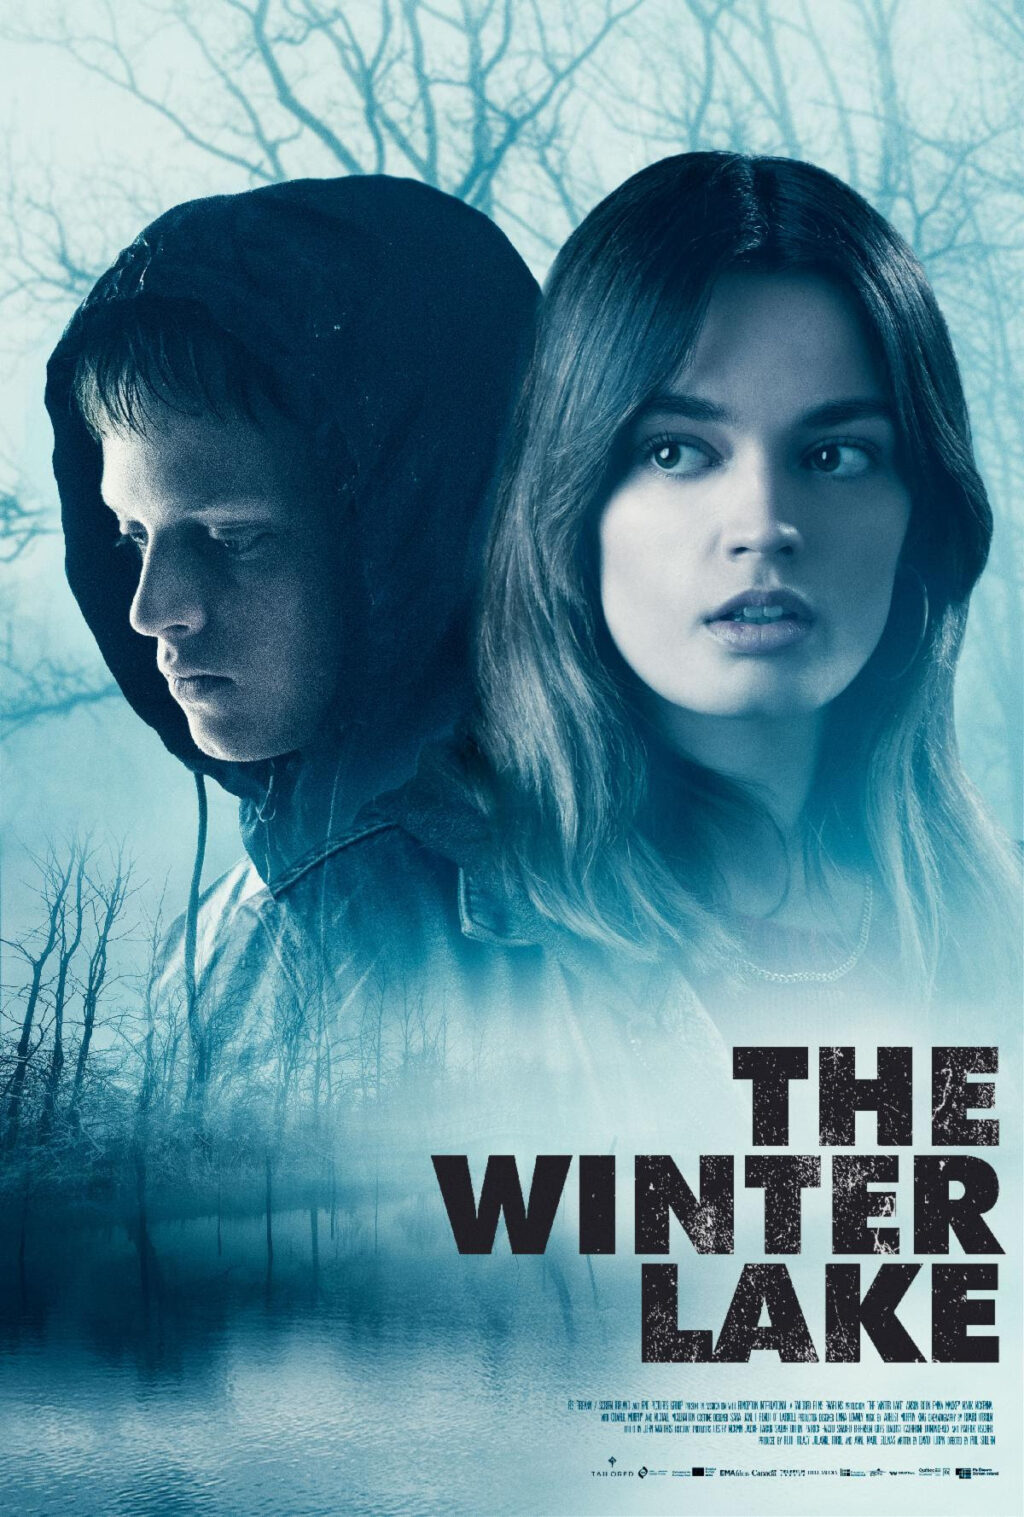 The Winter Lake 1024x1517 - Trailer: Harrowing Coming-of-Age Horror THE WINTER LAKE Arrives March 5th